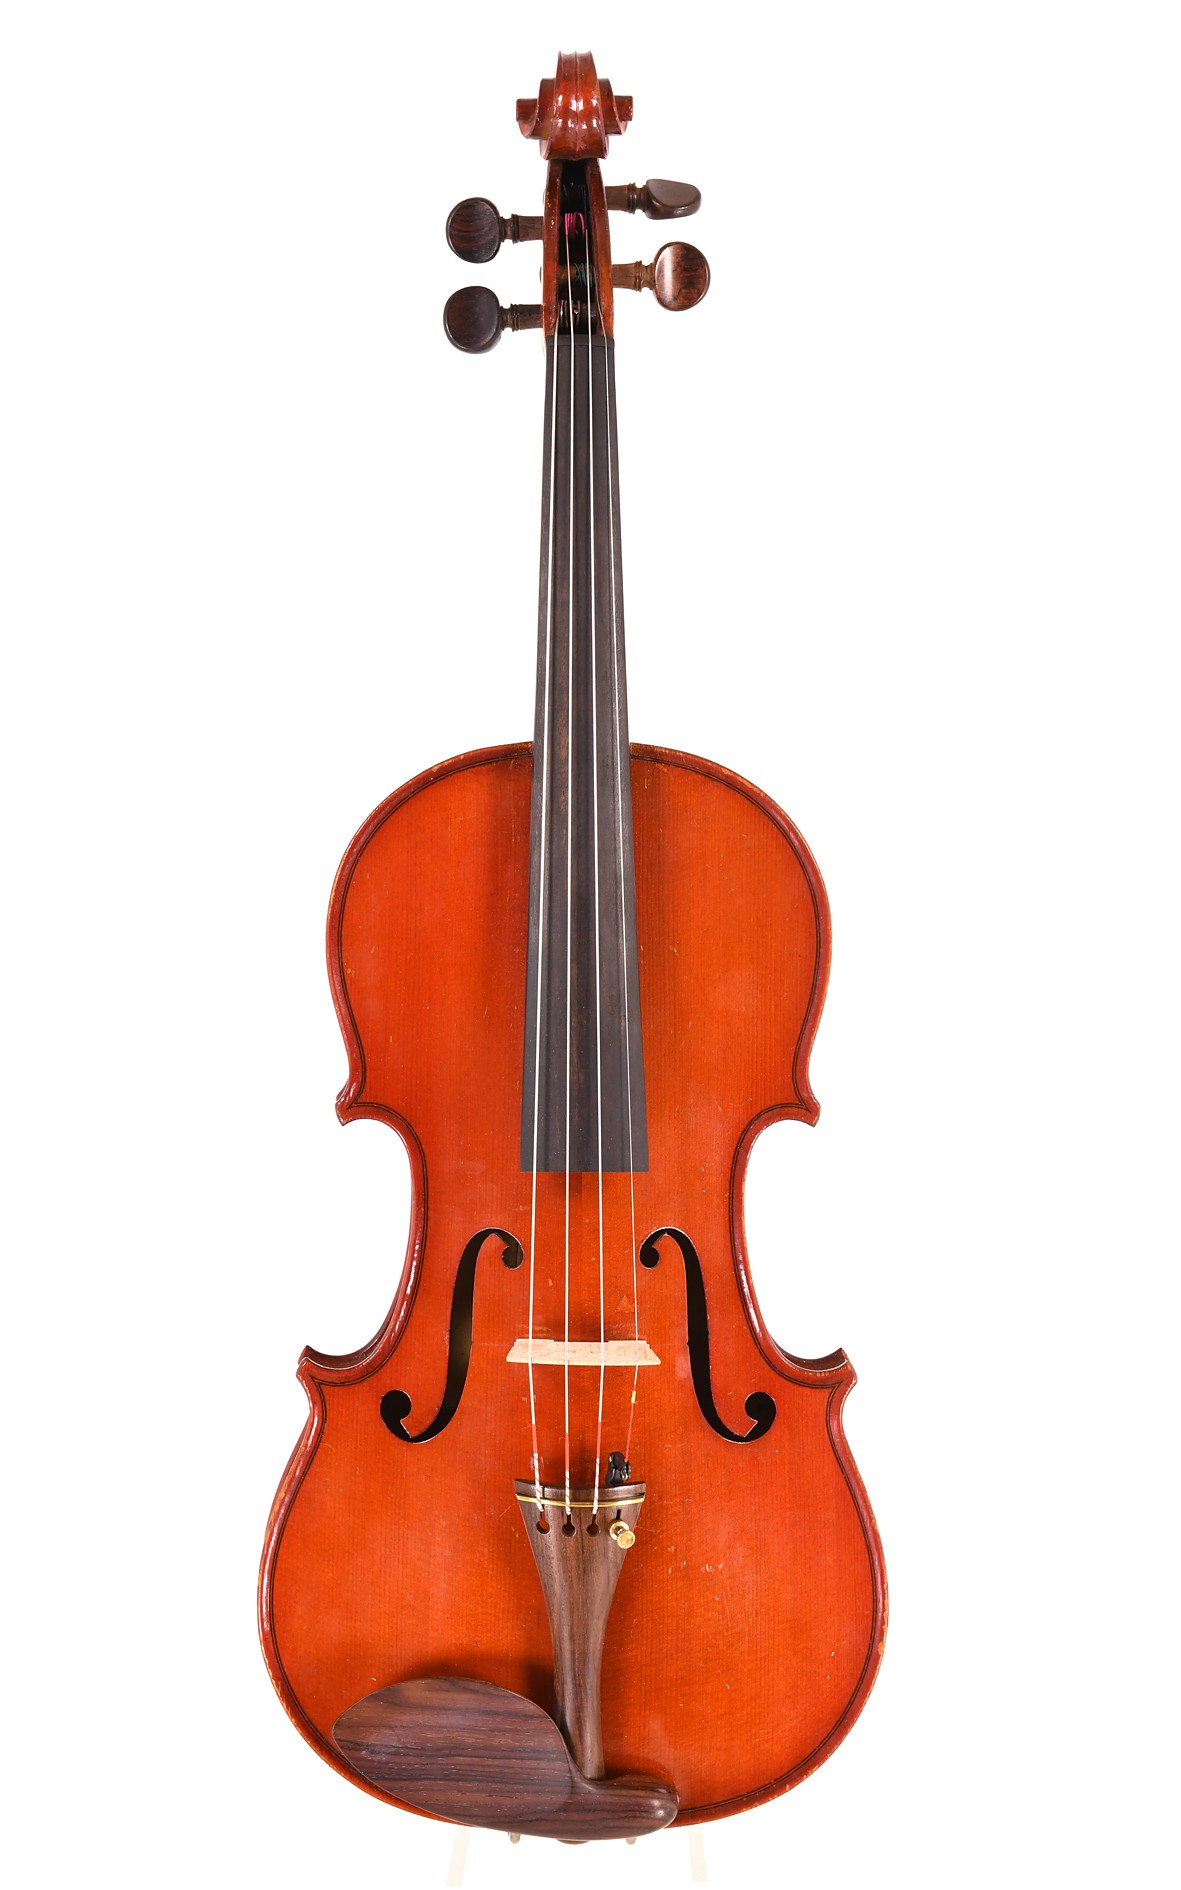 Carel violin by JTL ca. 1900 - top